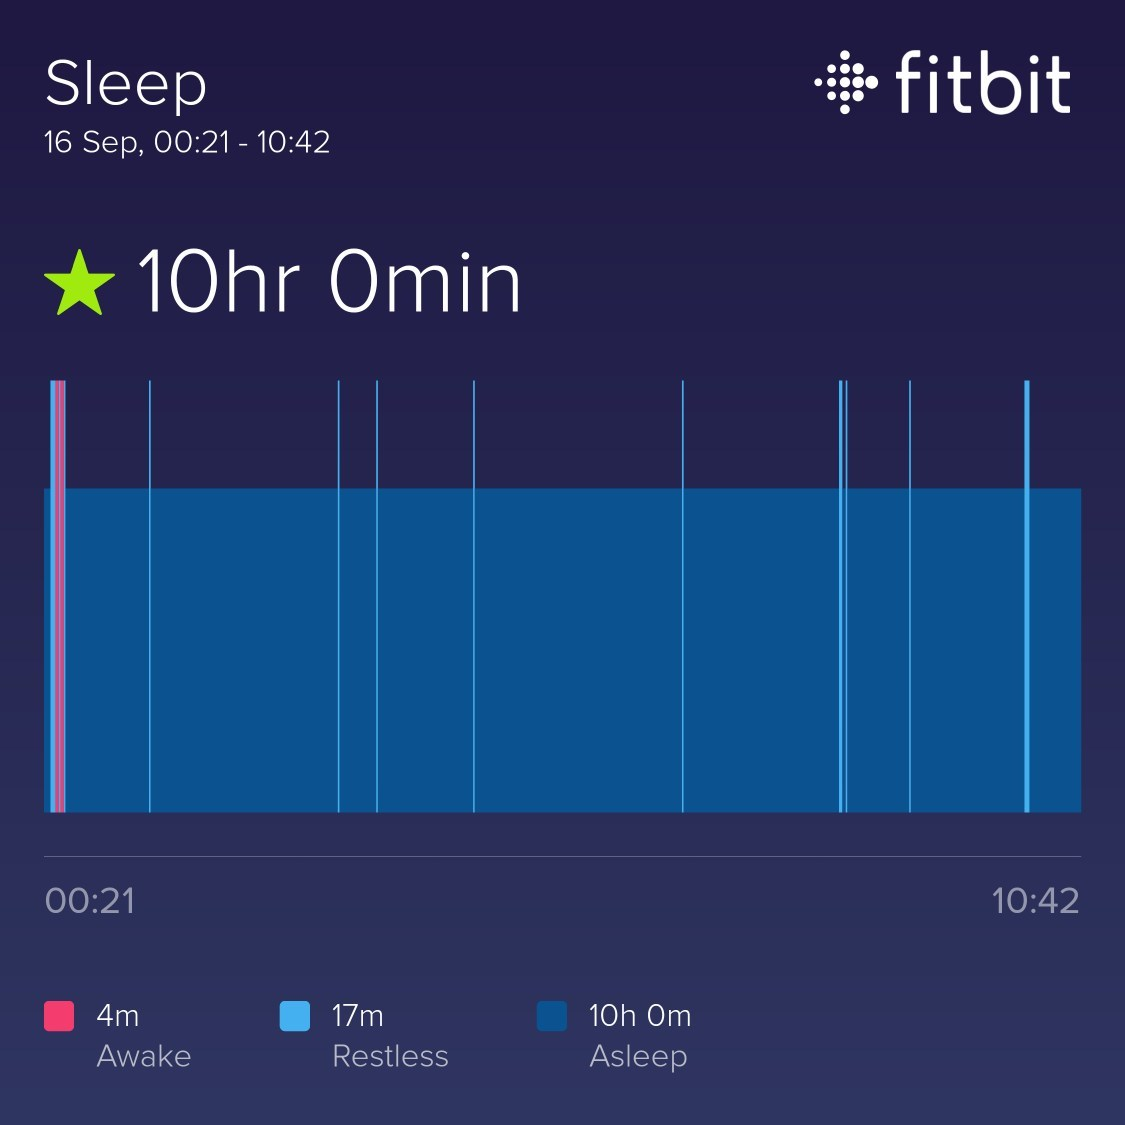 A fitbit sleep screen, showing 10 hours and 0 minutes of sleep on September 16th.